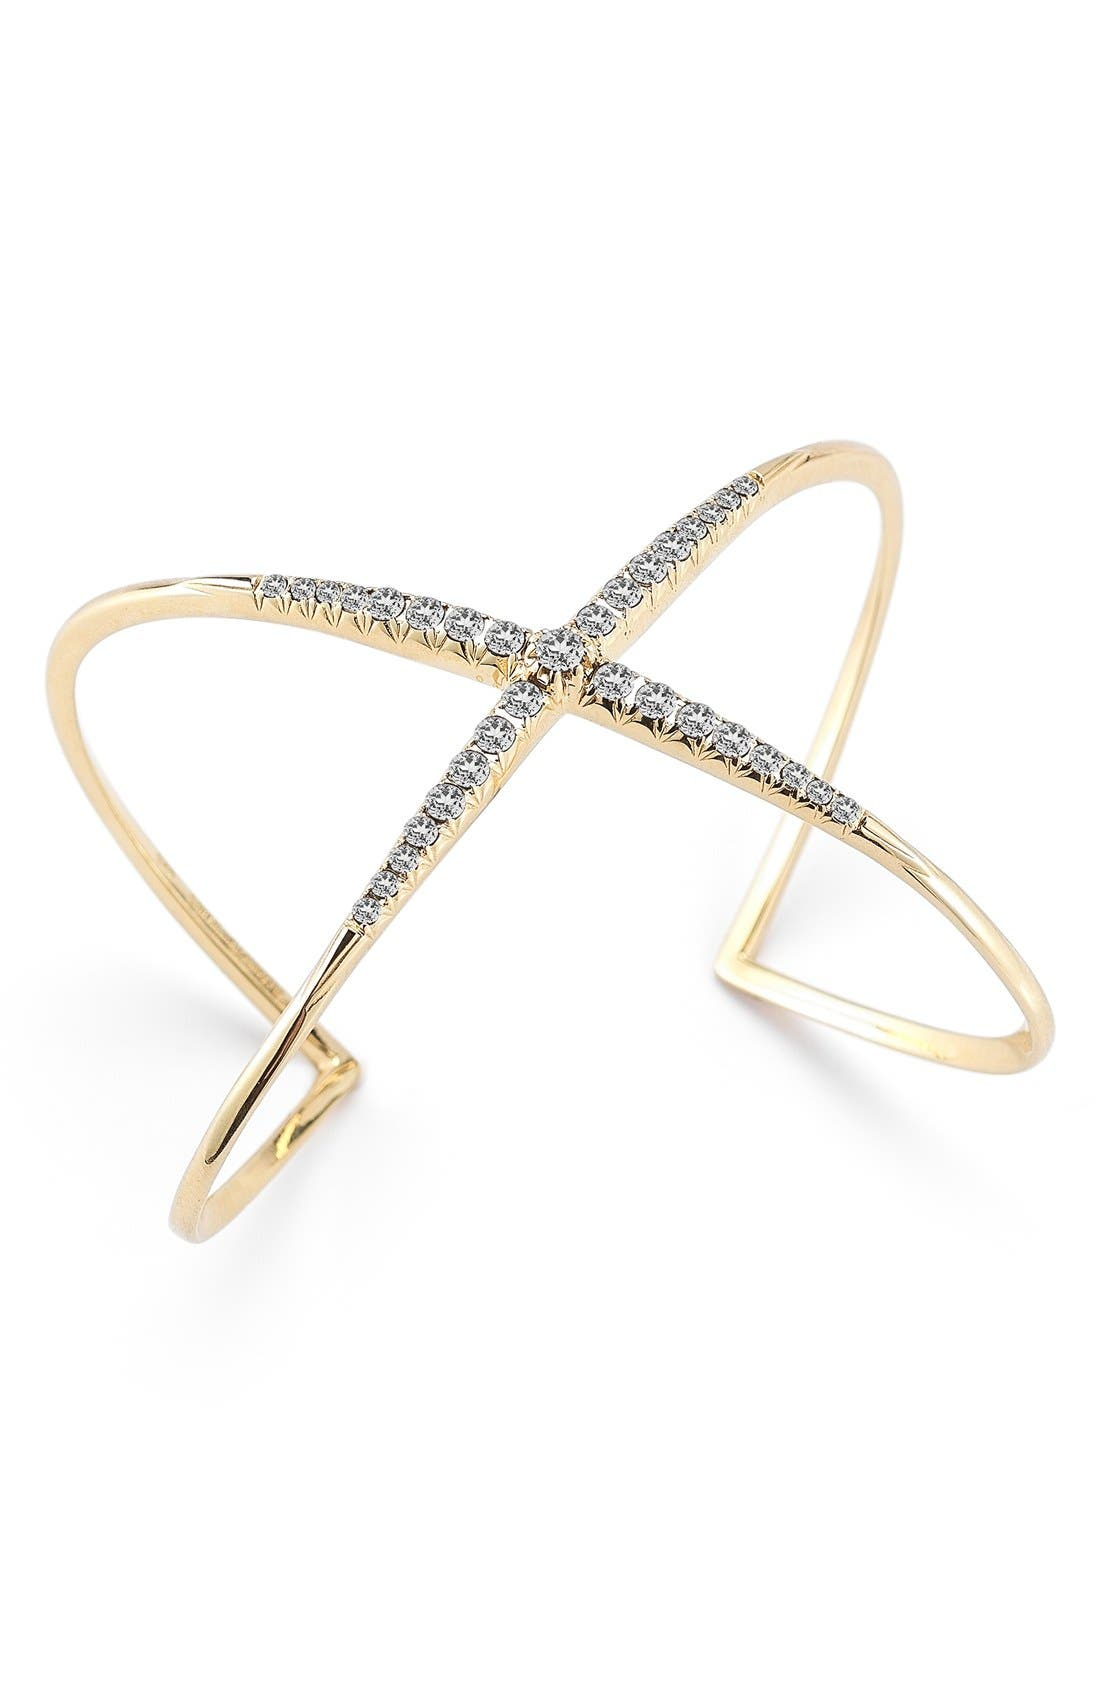 Main Image - Elizabeth and James Windrose Pavé Crossover Cuff